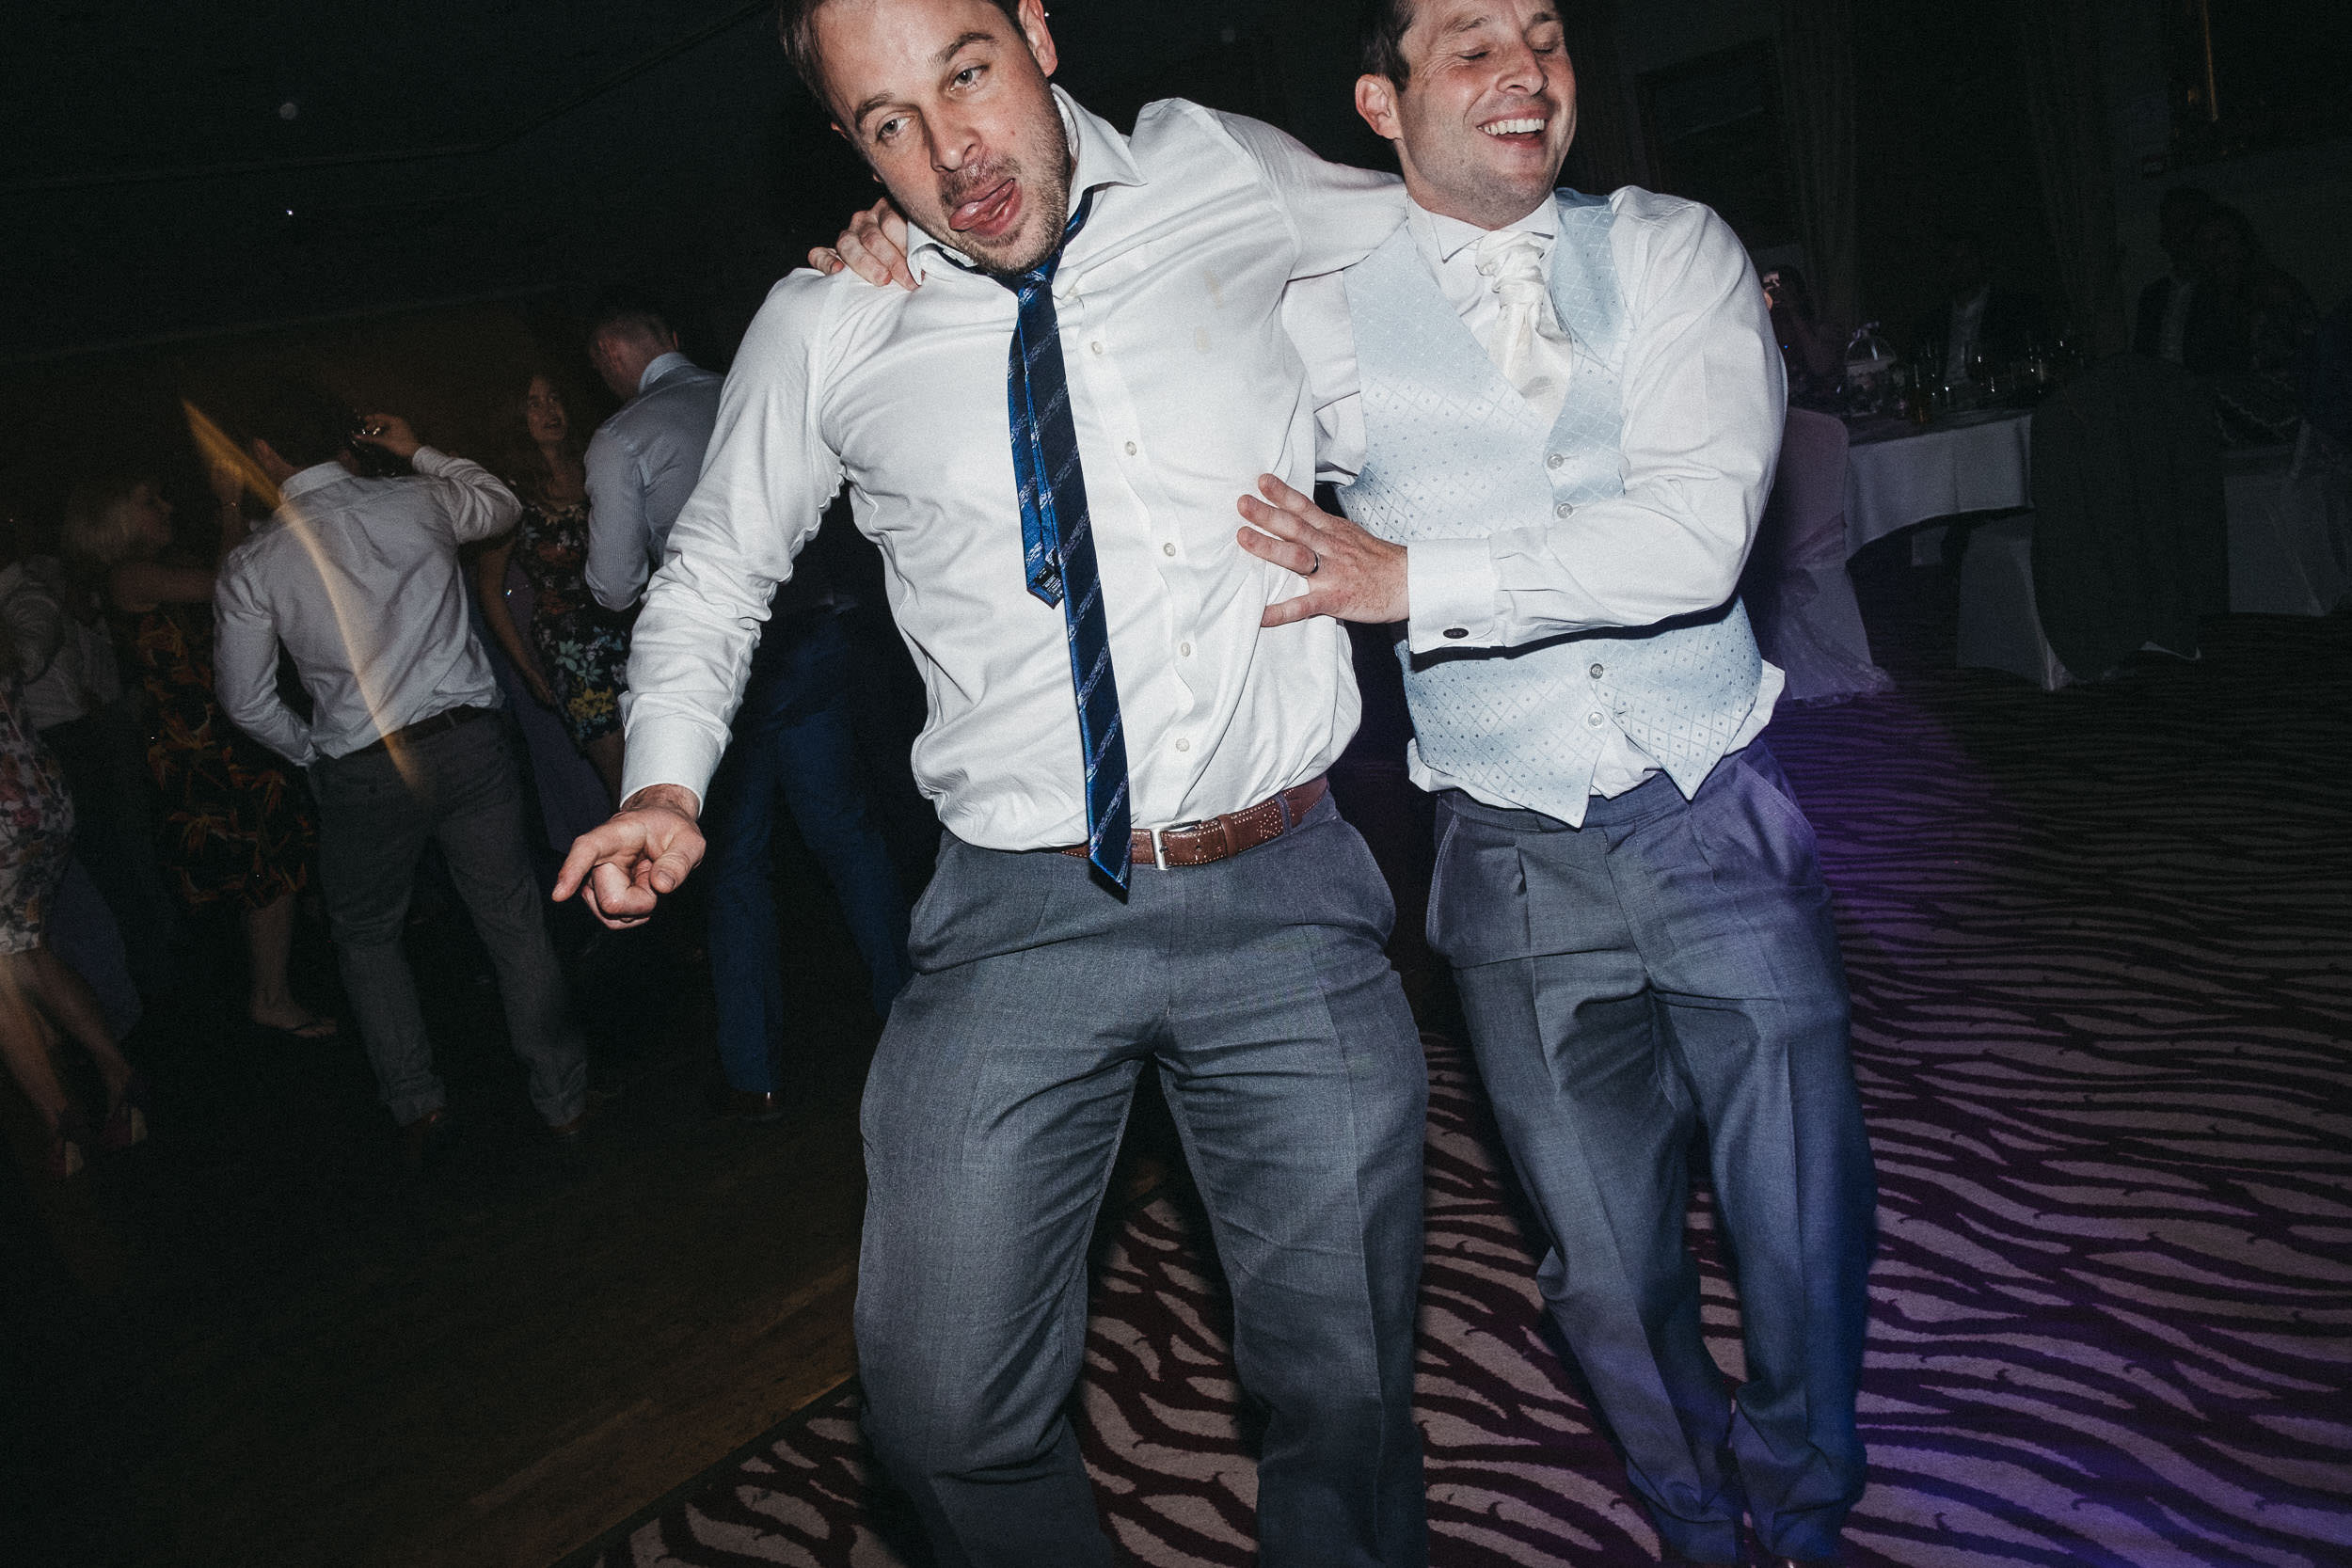 Drunk groomsmen pull funny faces while dancing